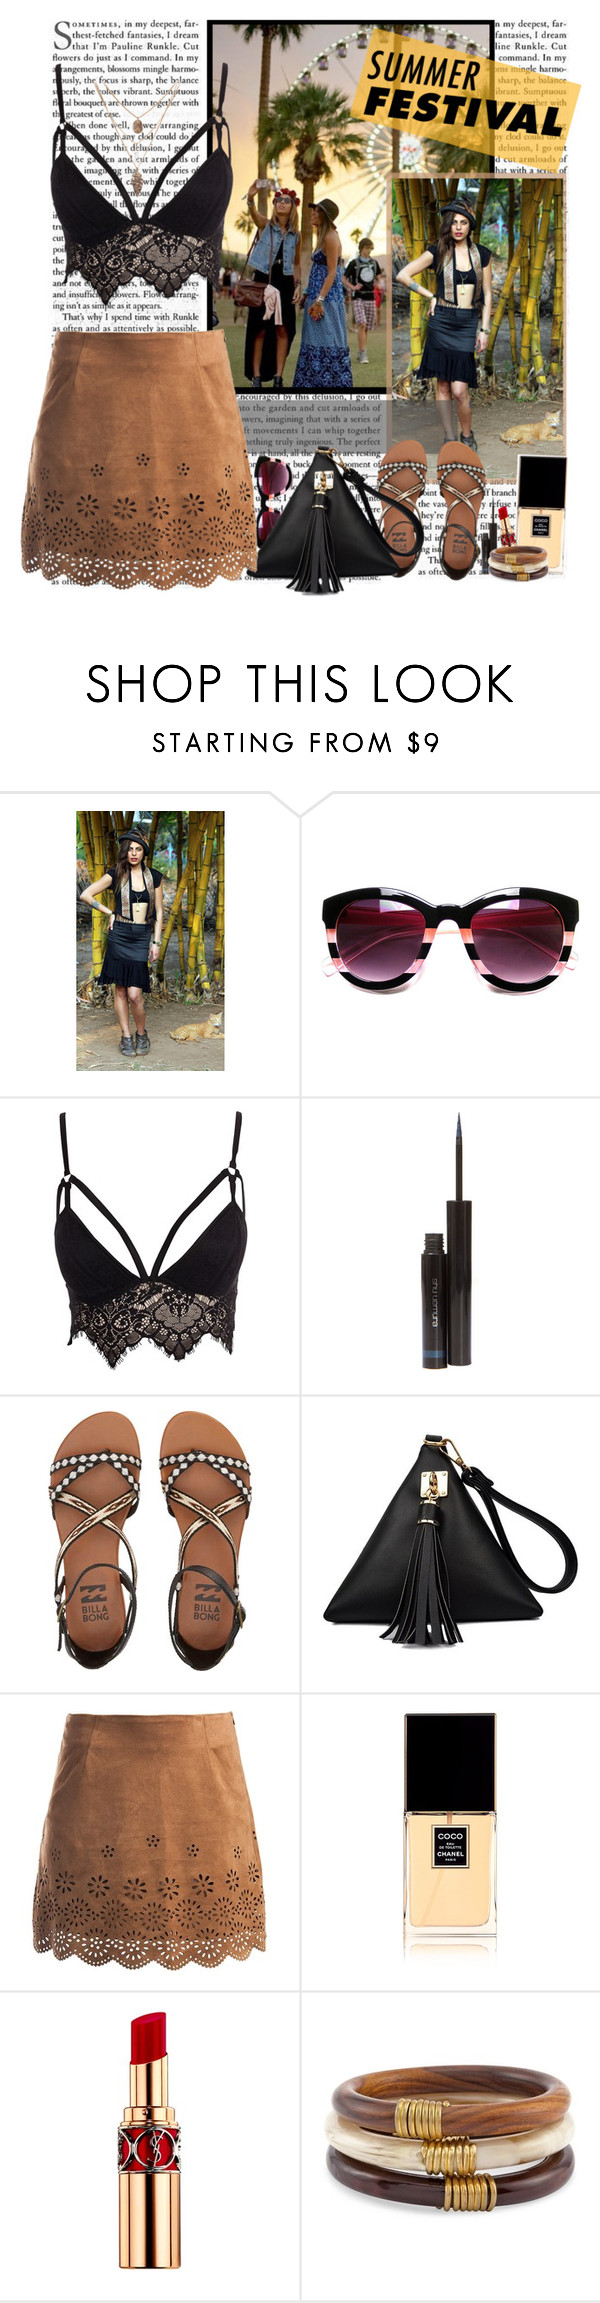 """""""Coachella Style"""" by fashionistlady ❤ liked on Polyvore featuring Club L, shu uemura, Billabong, Sans Souci, Chanel, Yves Saint Laurent and Chico's"""